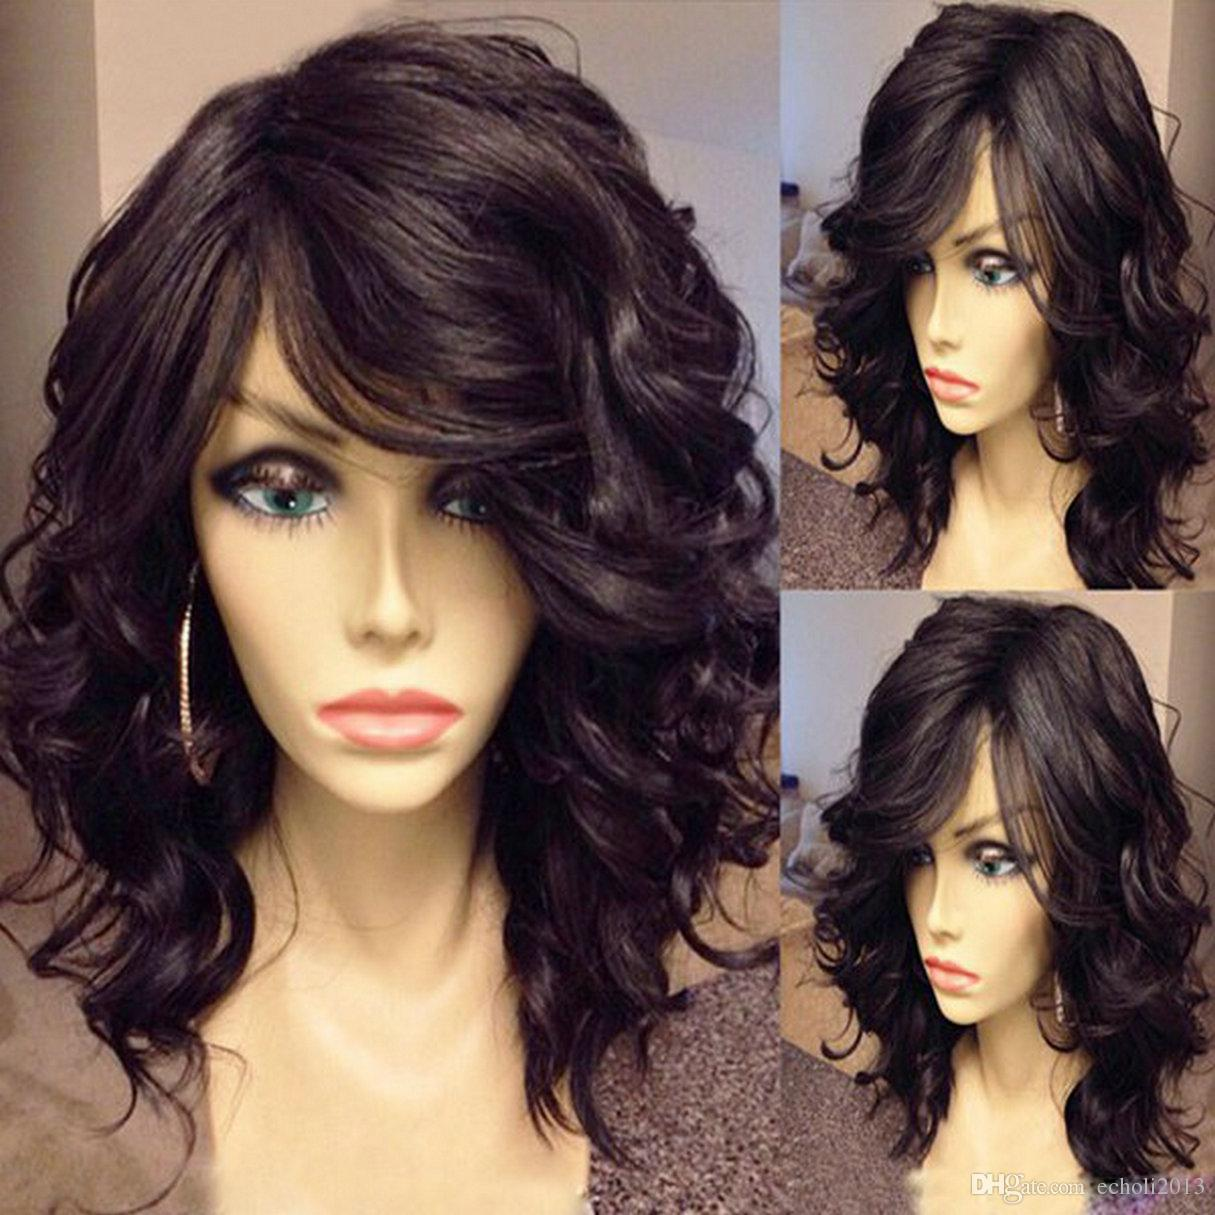 Side part short wavy curly bob lace front wigs 180% density full natural human hair wigs for black women